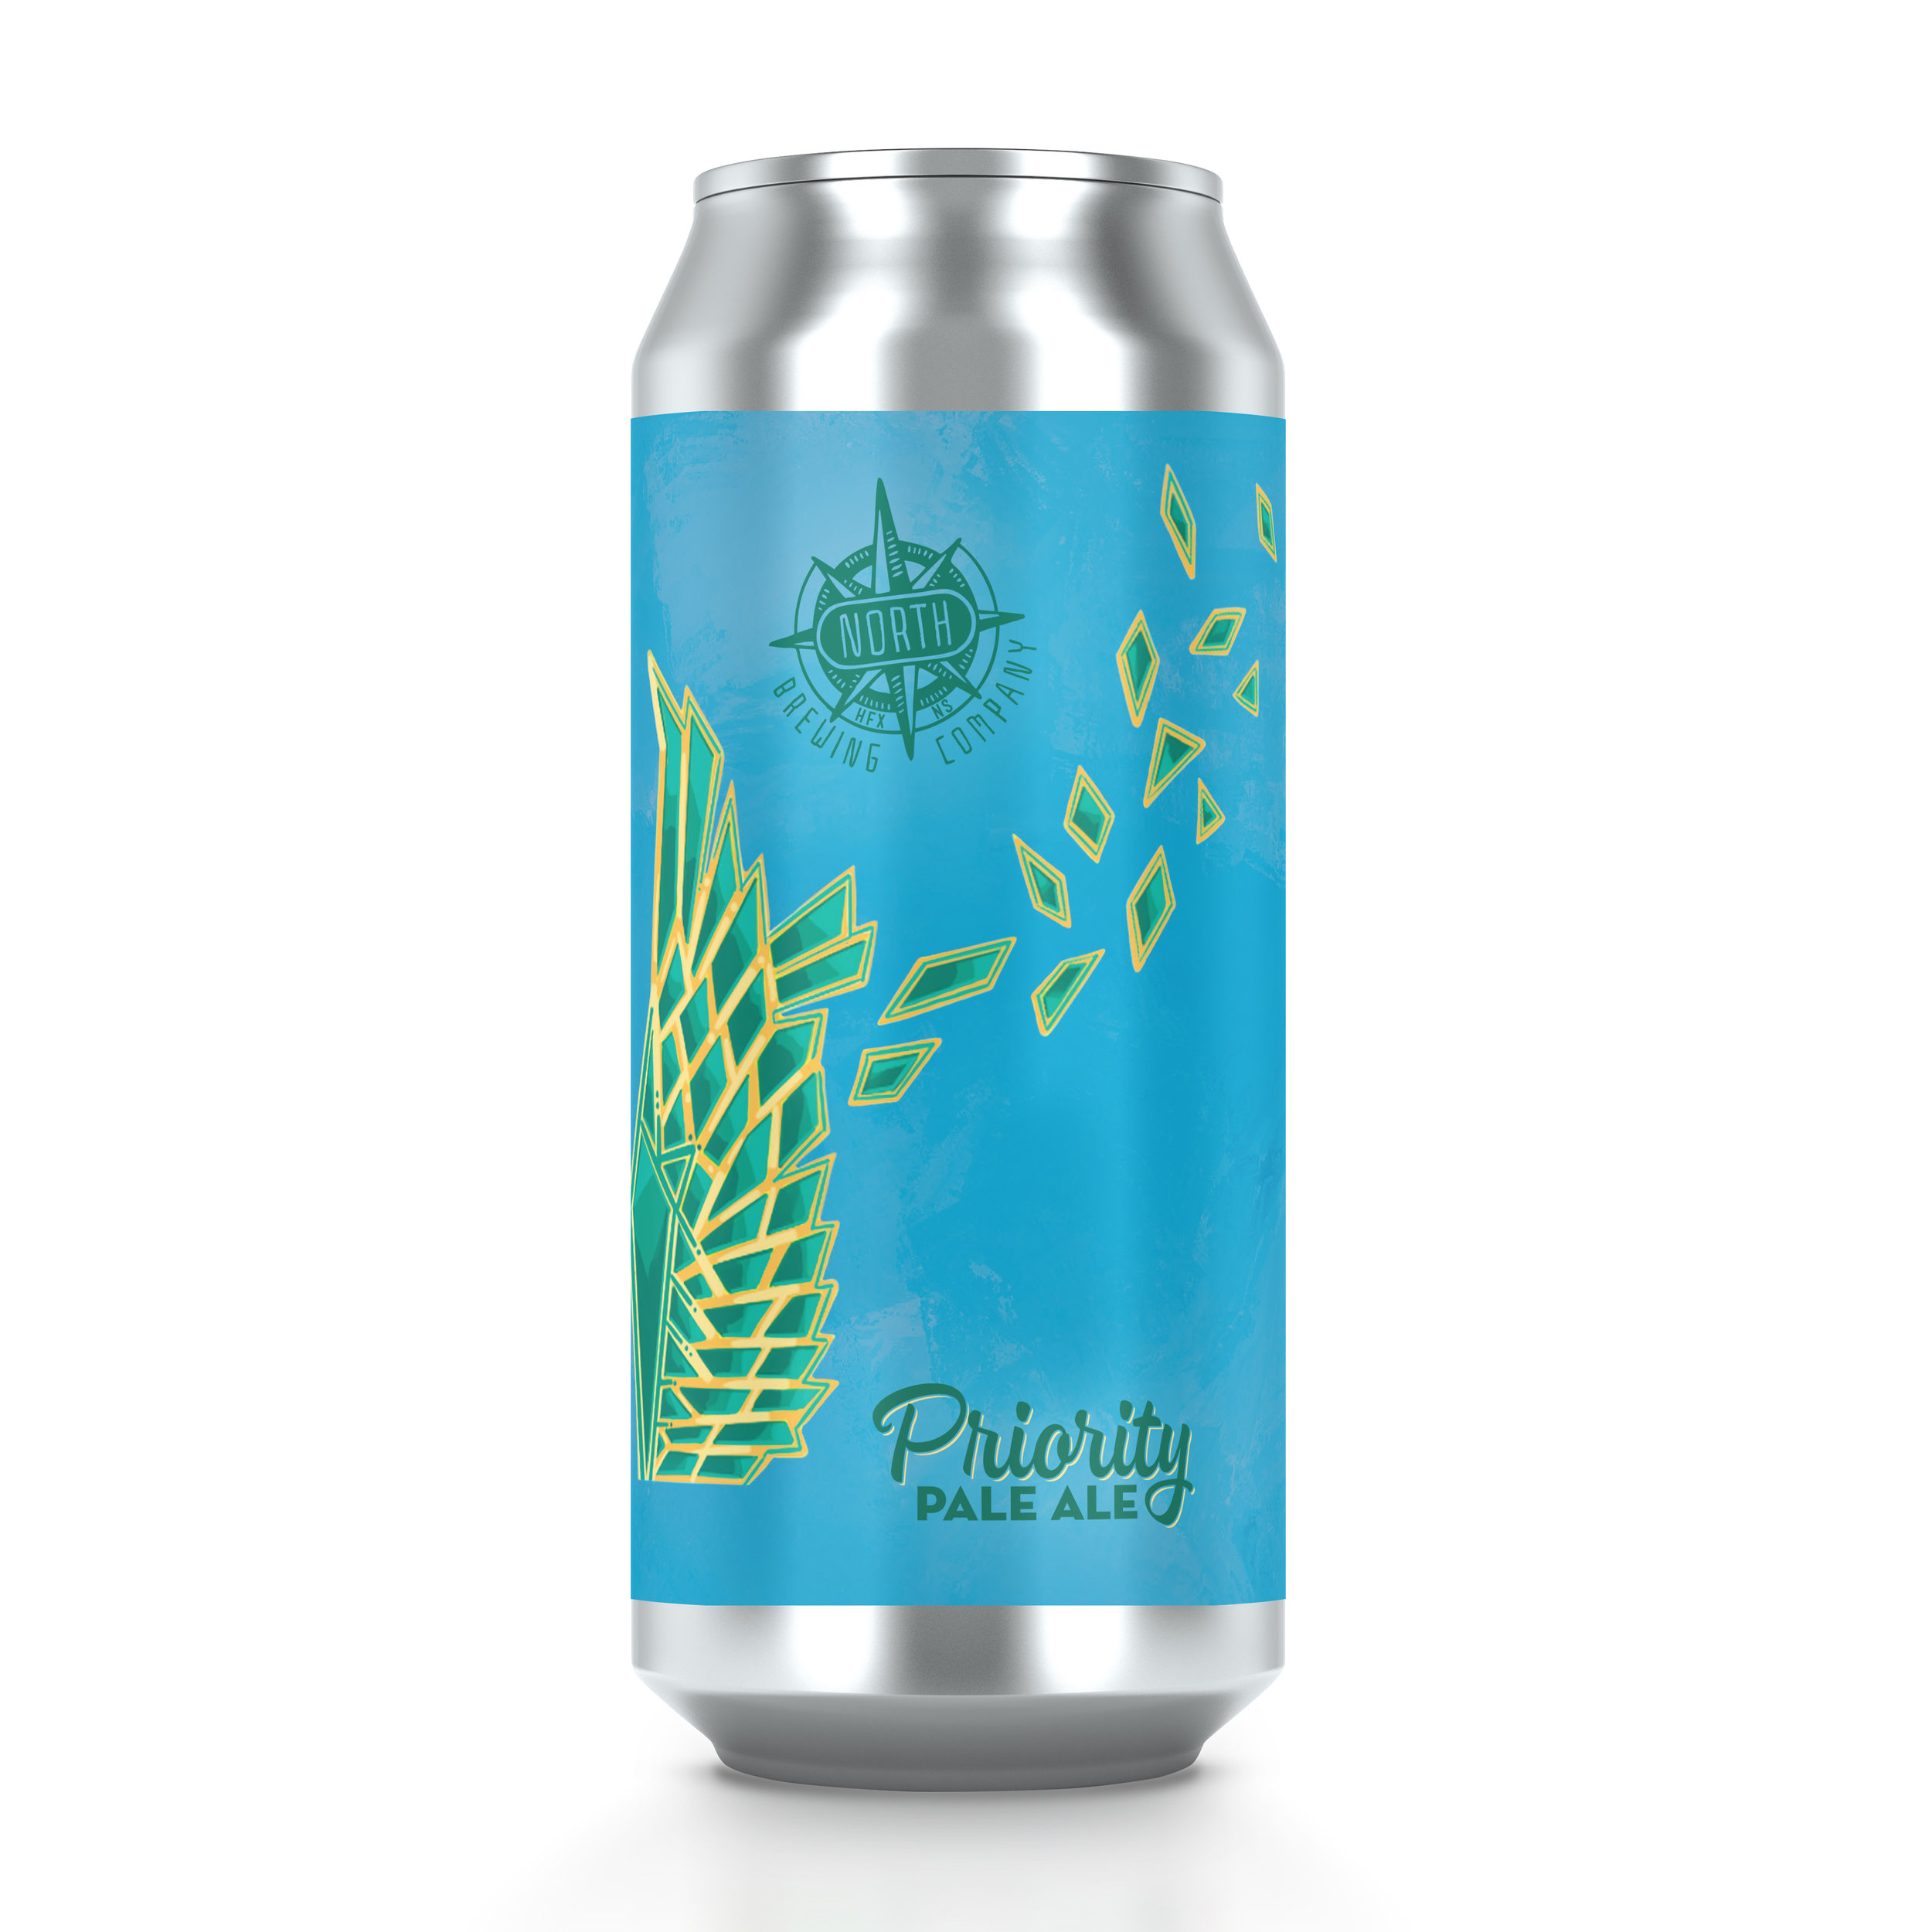 Priority Pale Ale    ABV 5%    Hops: Cascade & Columbus     Yeast: California Ale Yeast (White Labs)